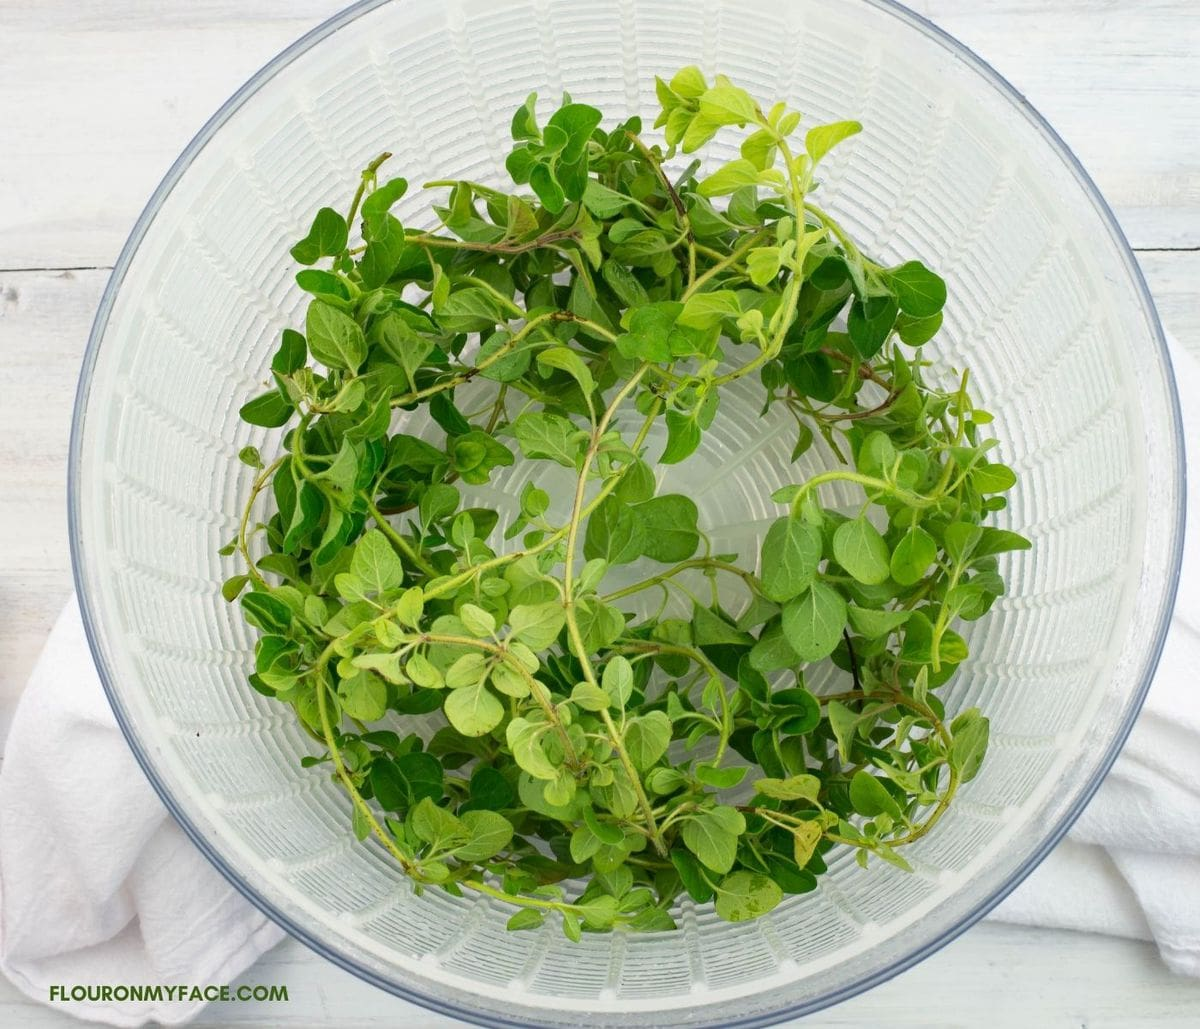 Using a salad spinner to dry off fresh oregano.